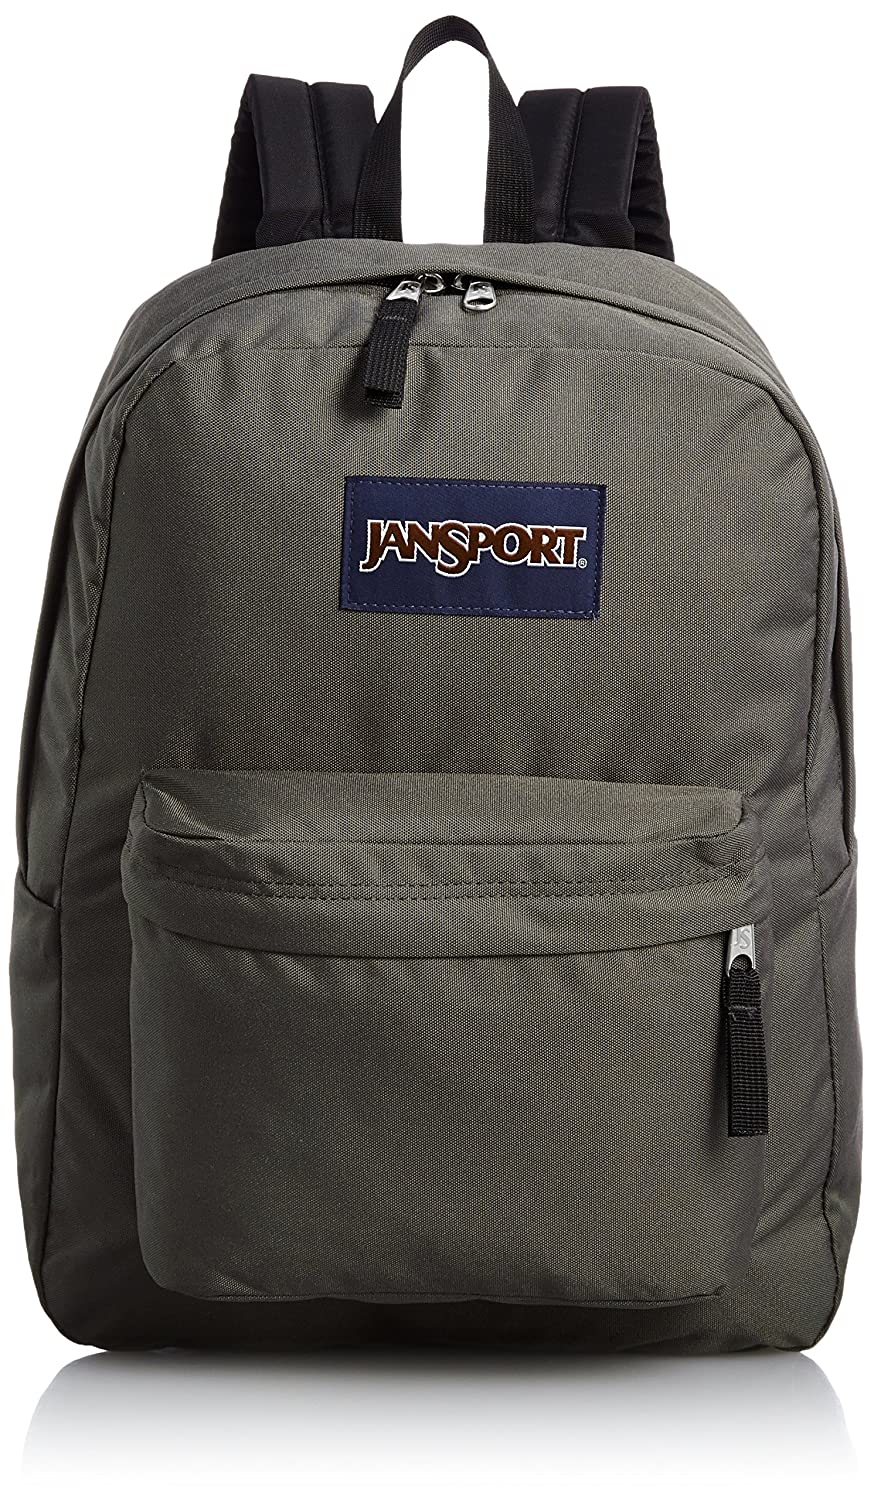 JanSport Classic Superbreak Rucksack 33 cm Forge Grey 6OLTaTLPV